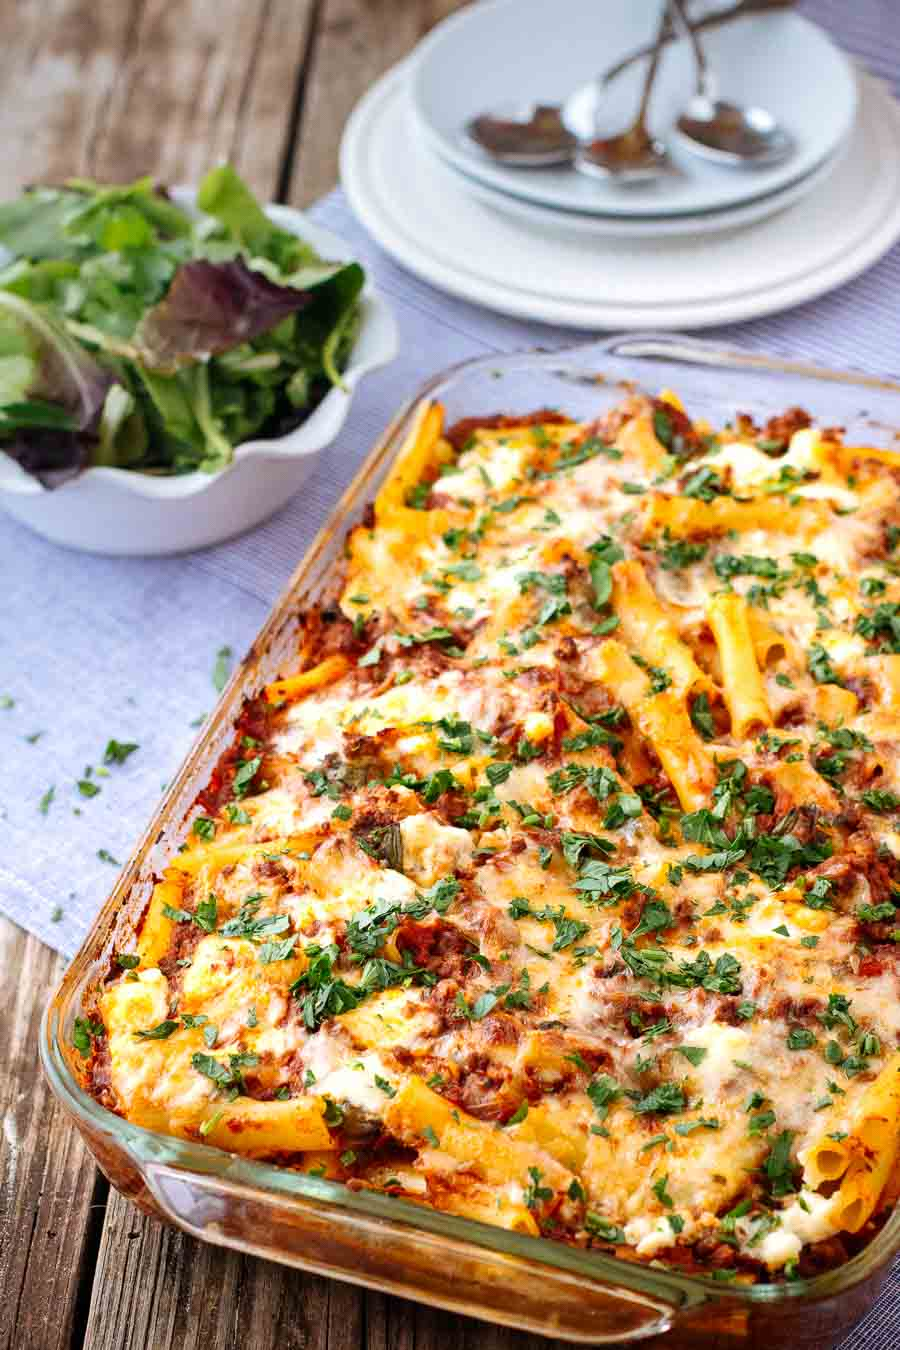 Baked Ziti with Meat Sauce photographed from the front view.